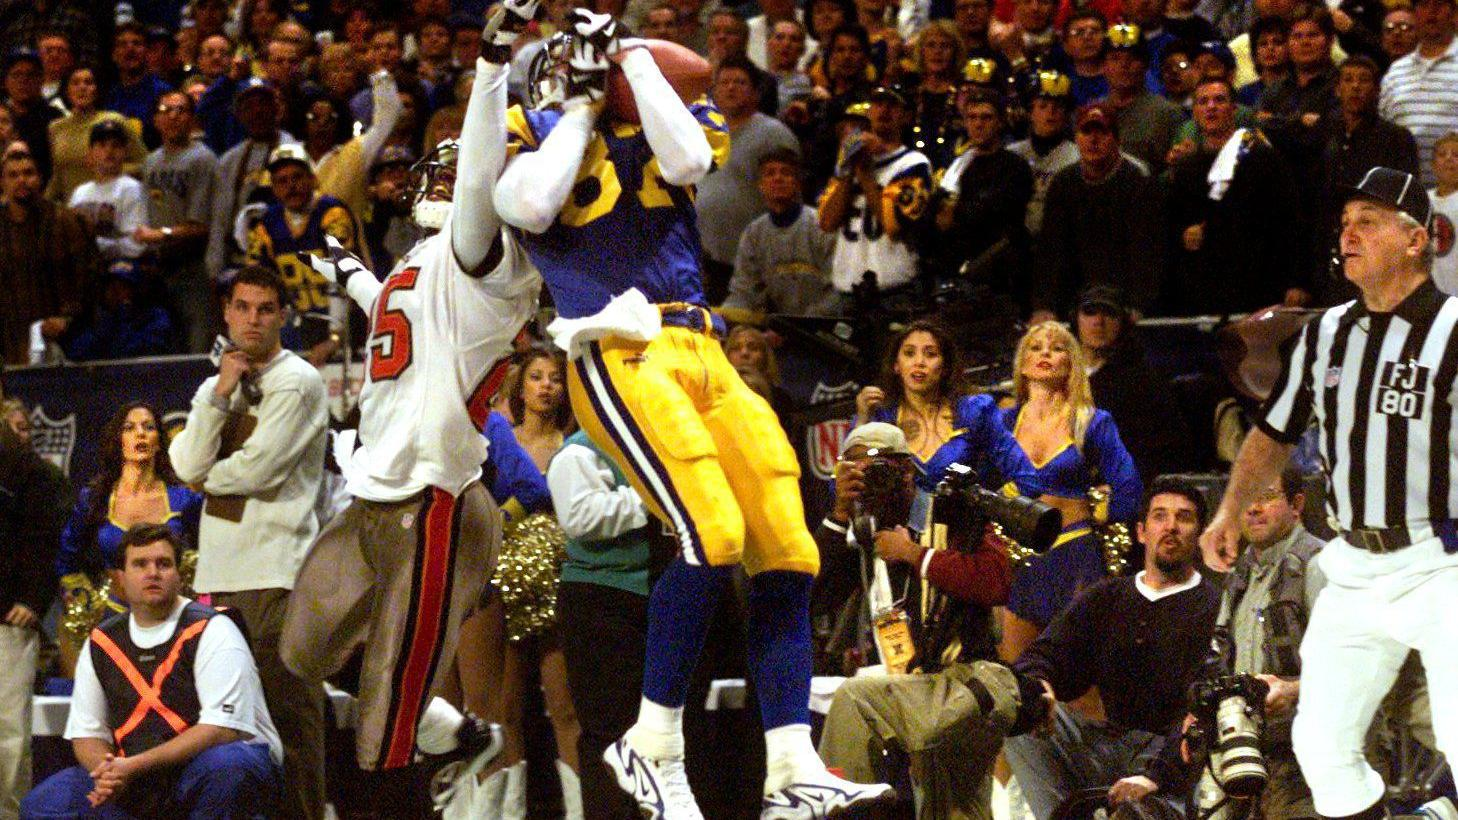 21 years ago: Ricky Proehl's catch vaulted the Rams to the Super Bowl